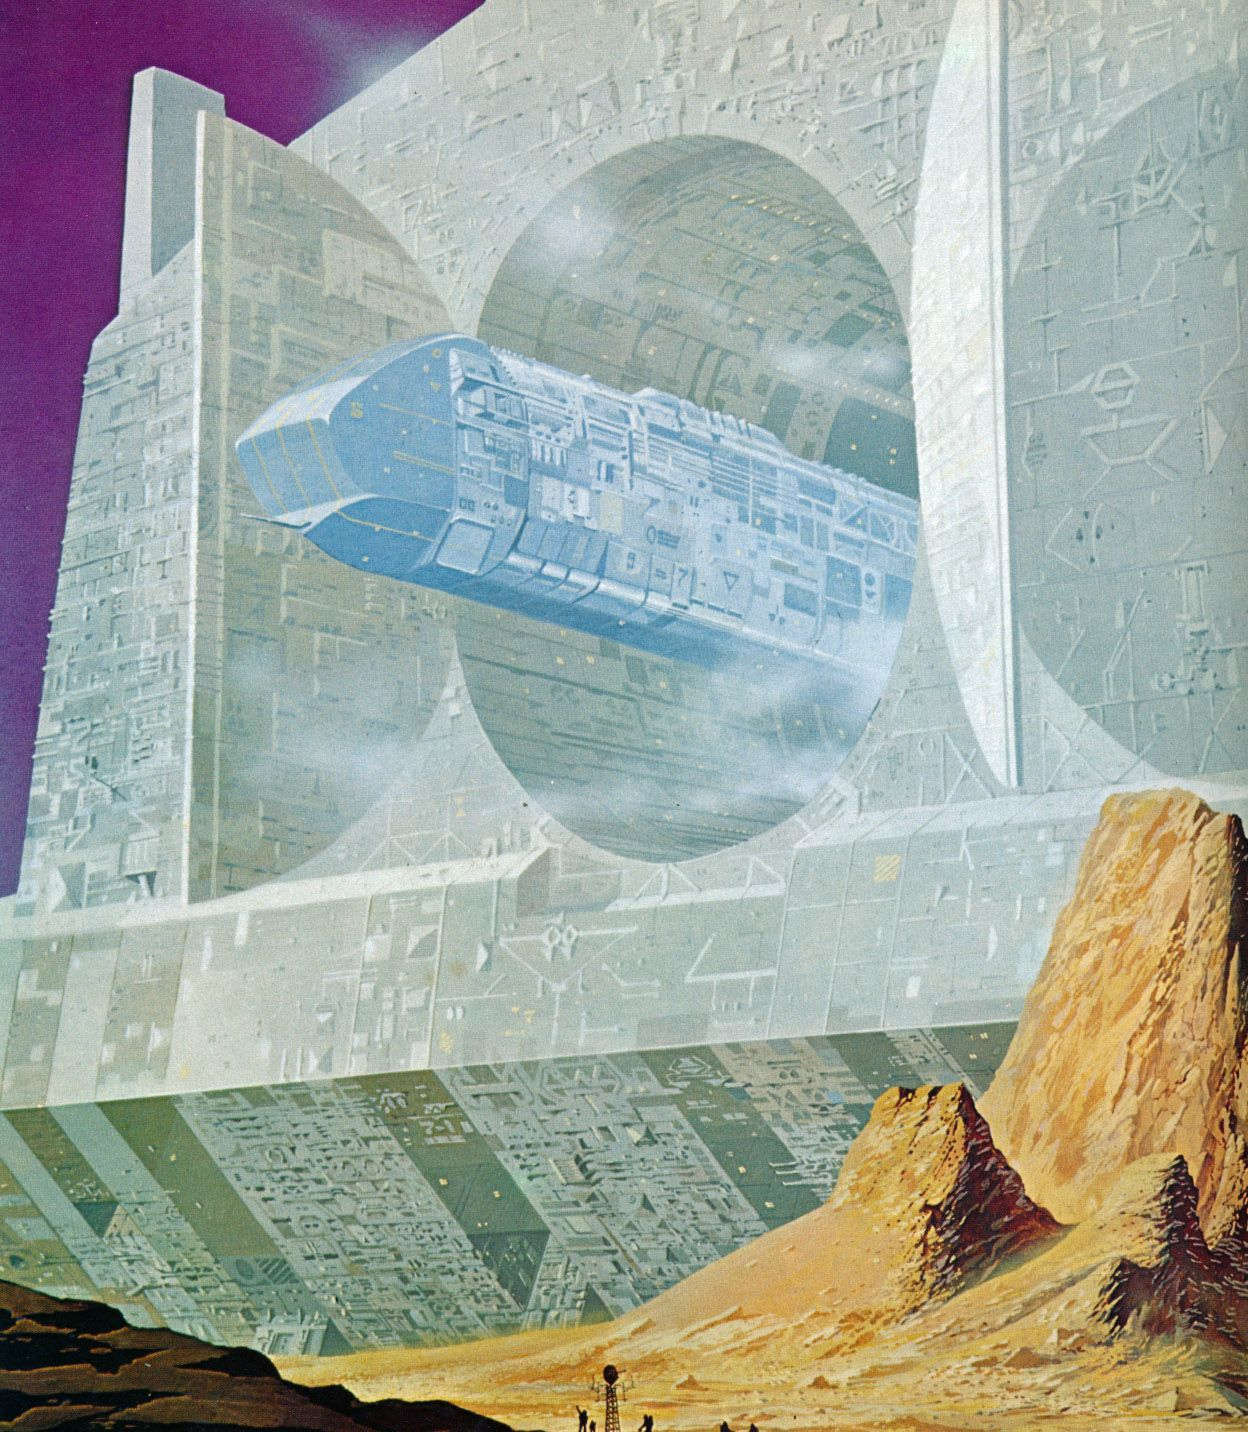 The Green Hills of Earth by Angus McKie from the book Futuropolis (1978)